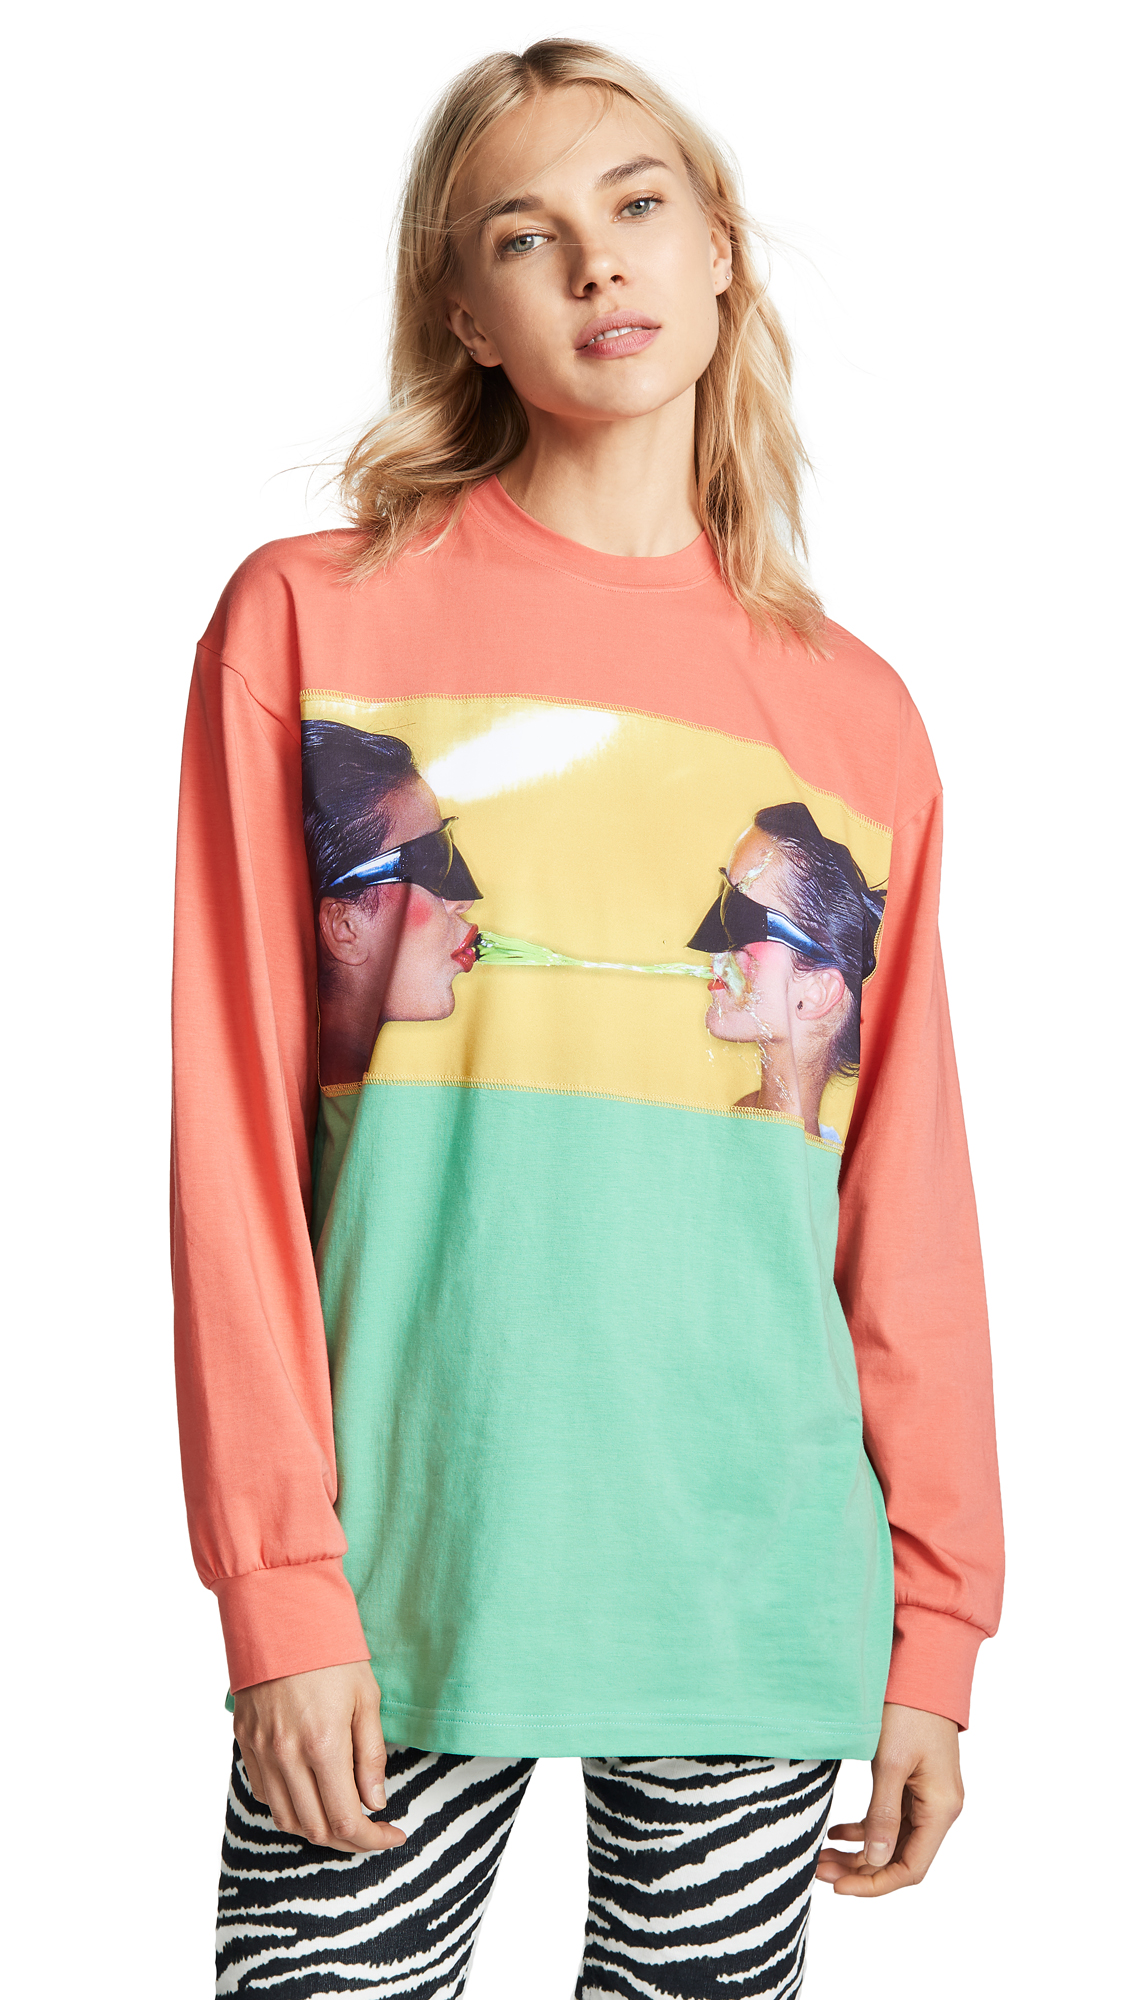 ADAM SELMAN Long Sleeve Tee in Green